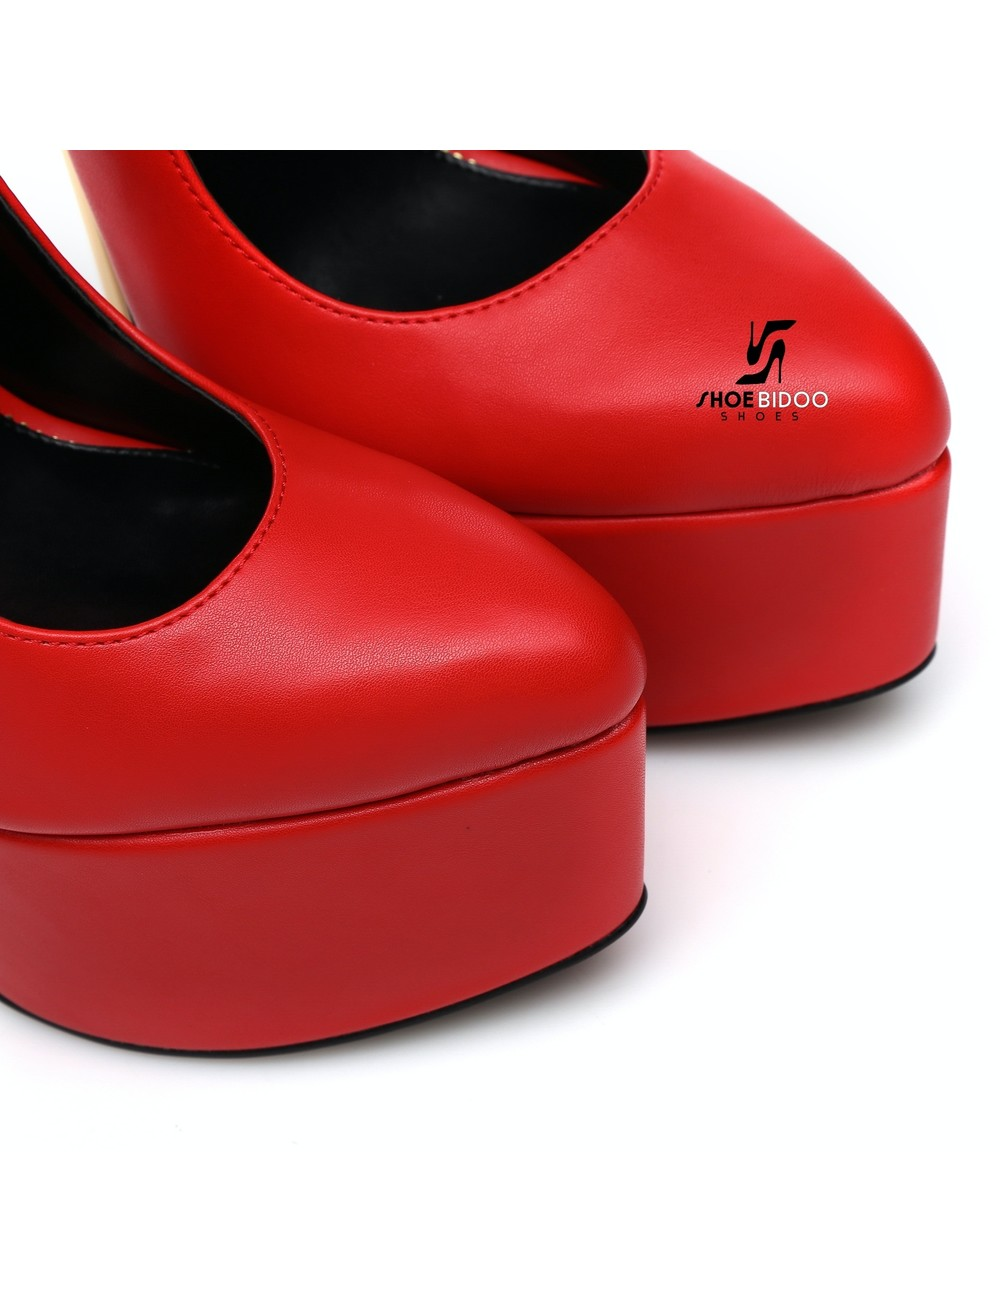 Giaro SLICK Red ESSENCE Giaro SLICK platform pumps with locking ankle strap